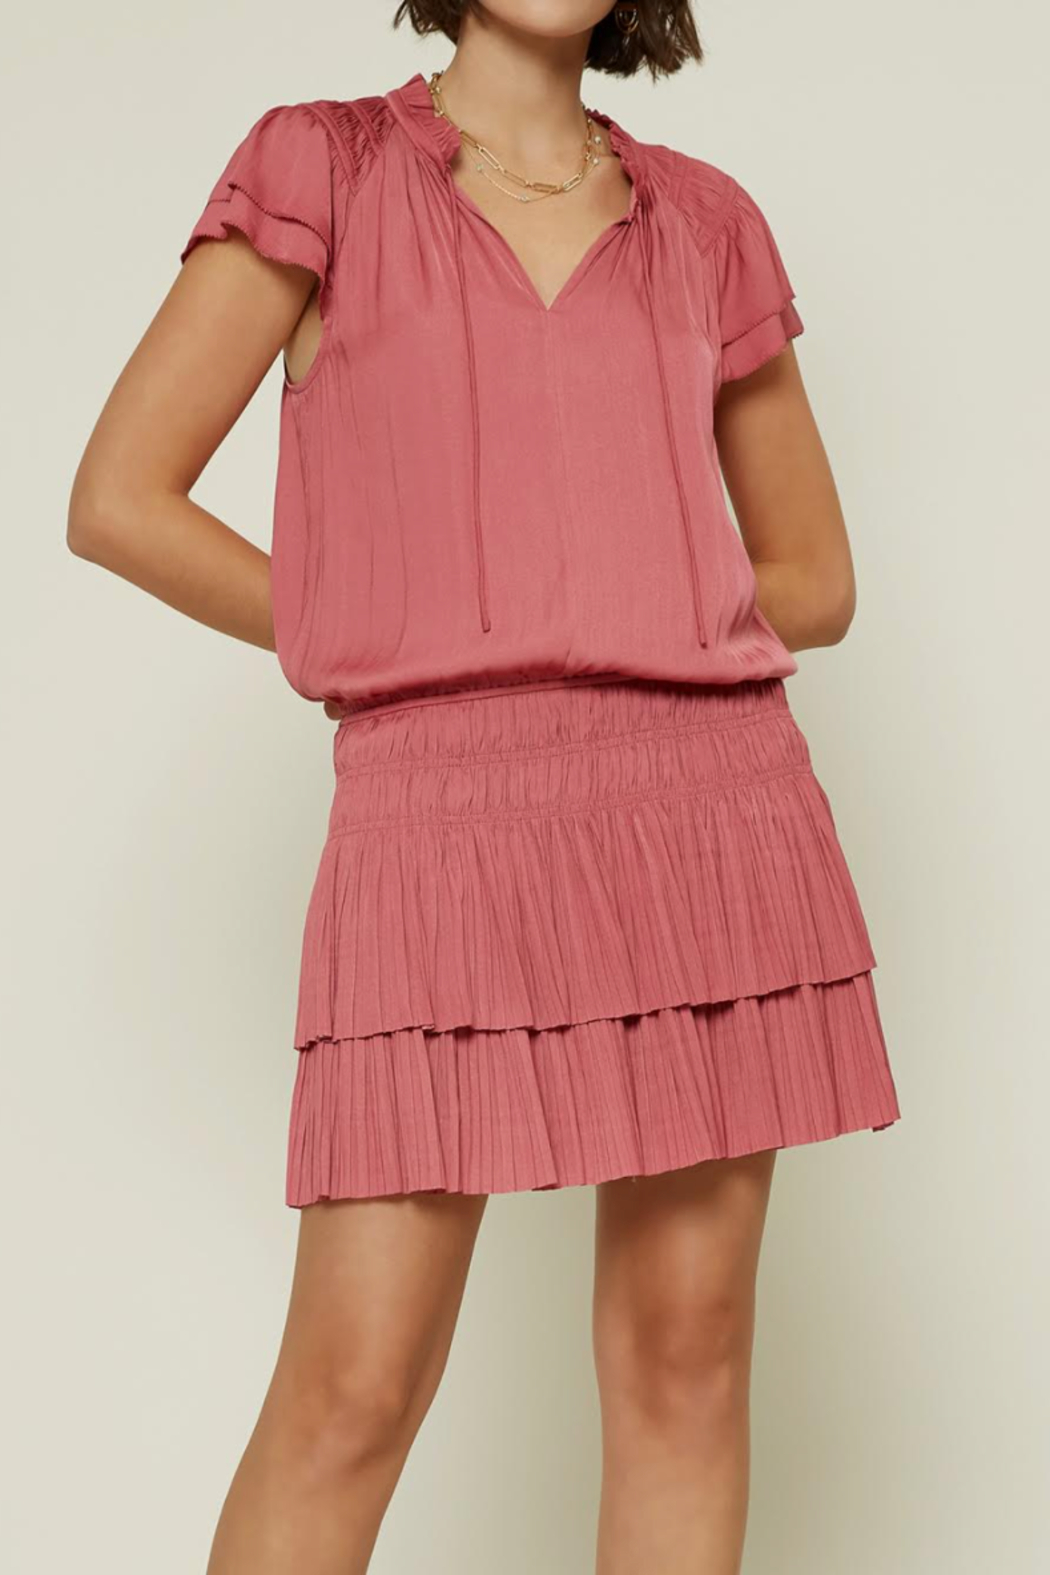 Current Air Tiered Ruffle Dress - Main Image